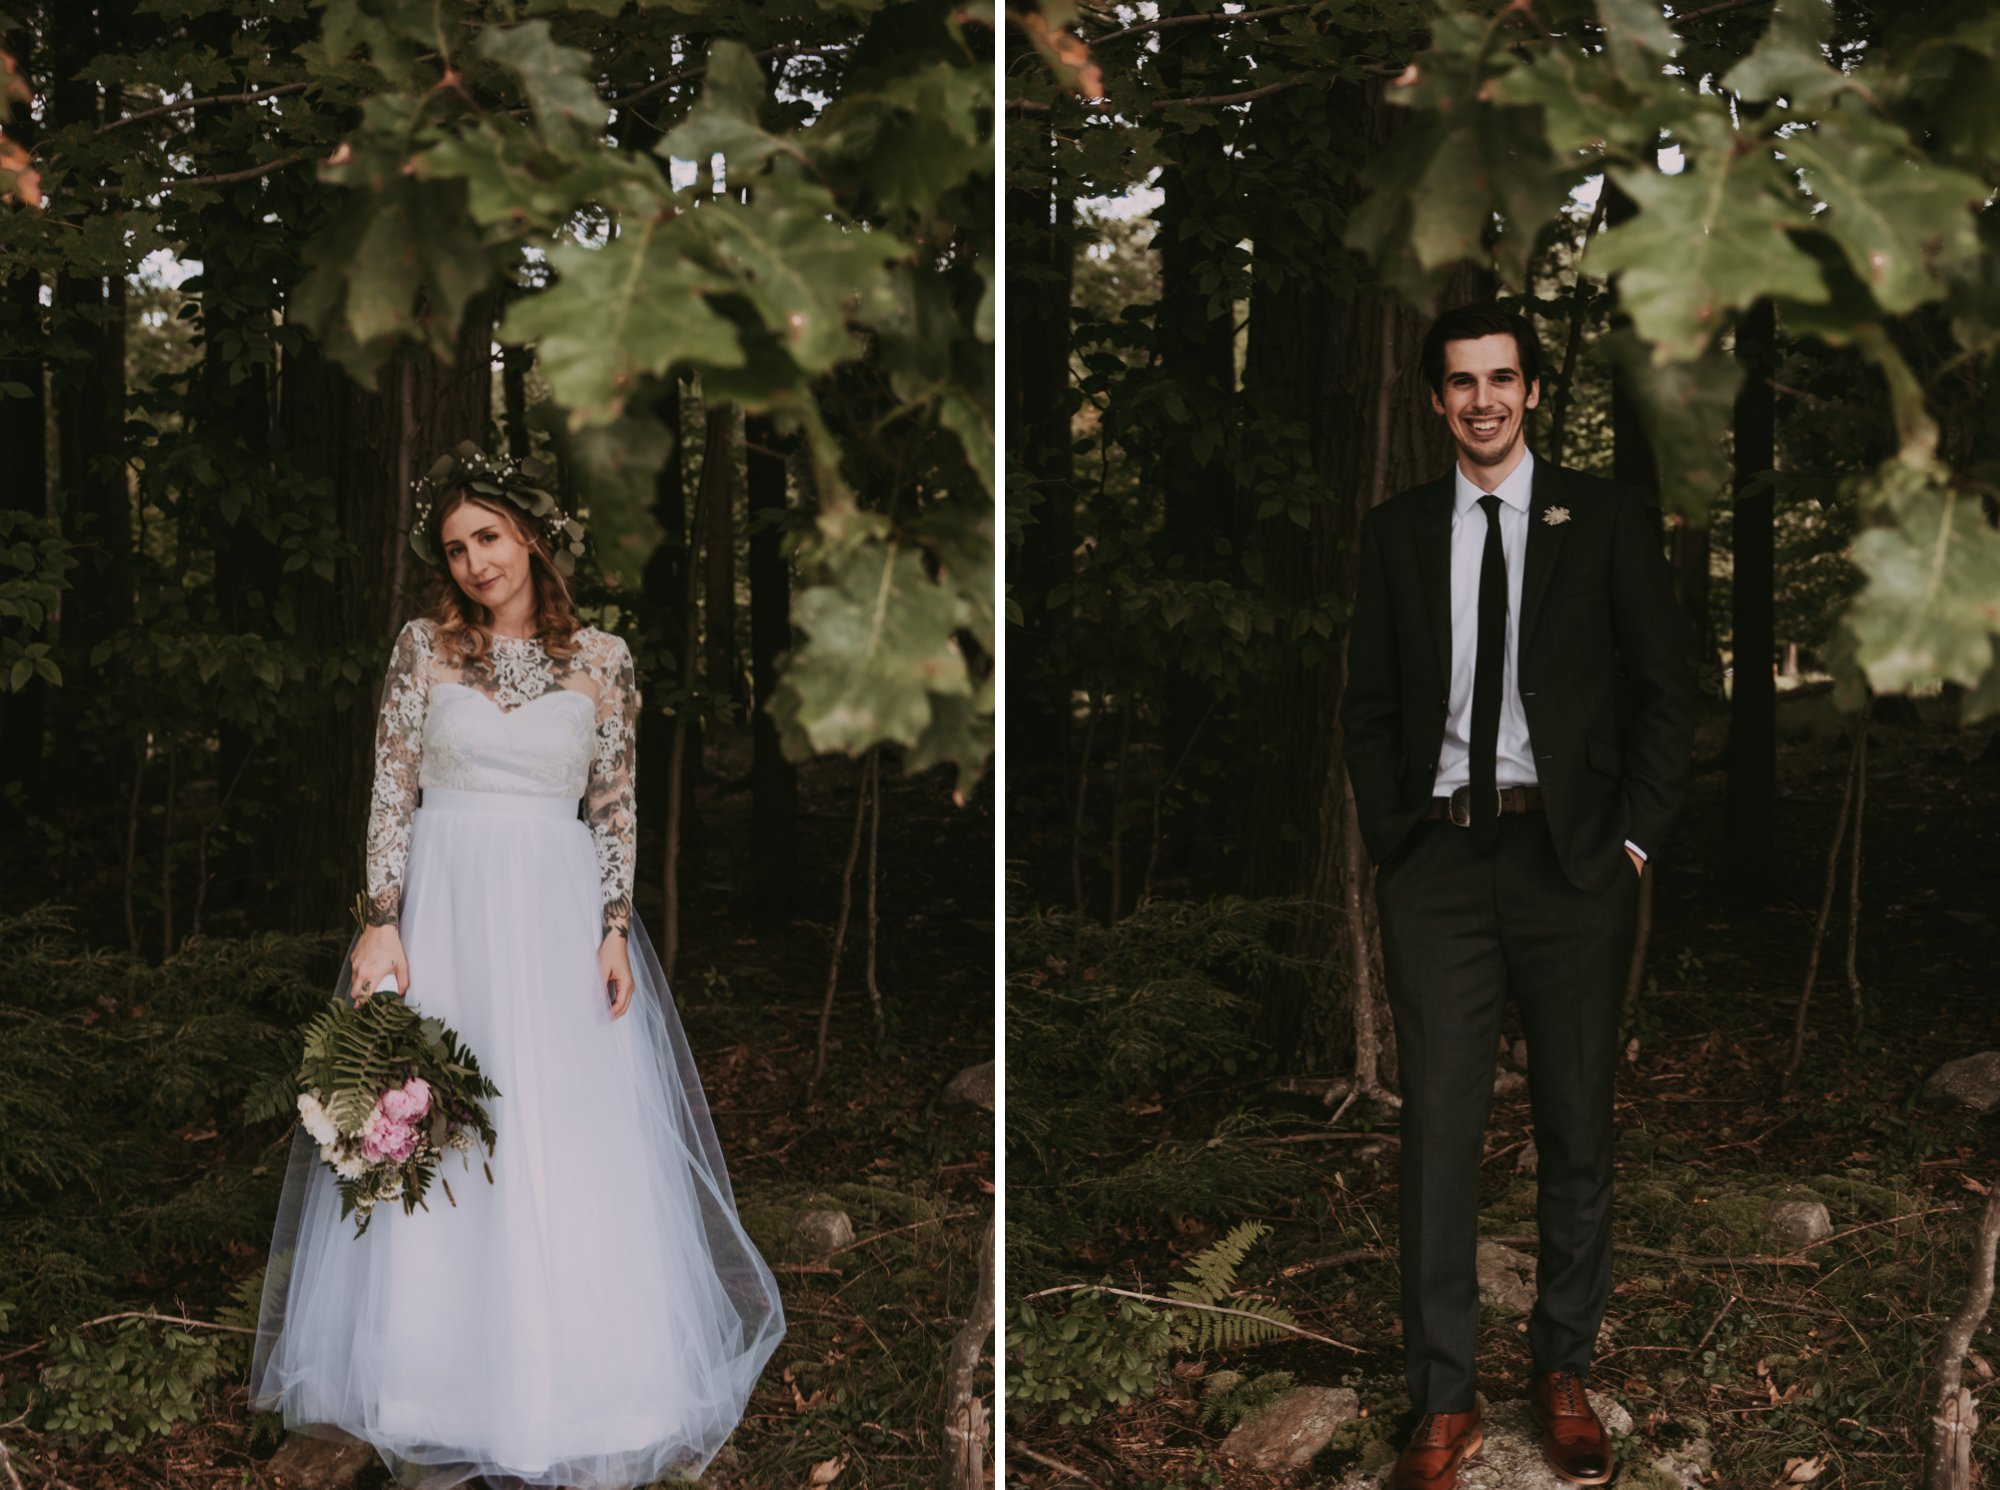 Rustic Intimate Vegan Forest Wedding with Handmade Dress. Couple